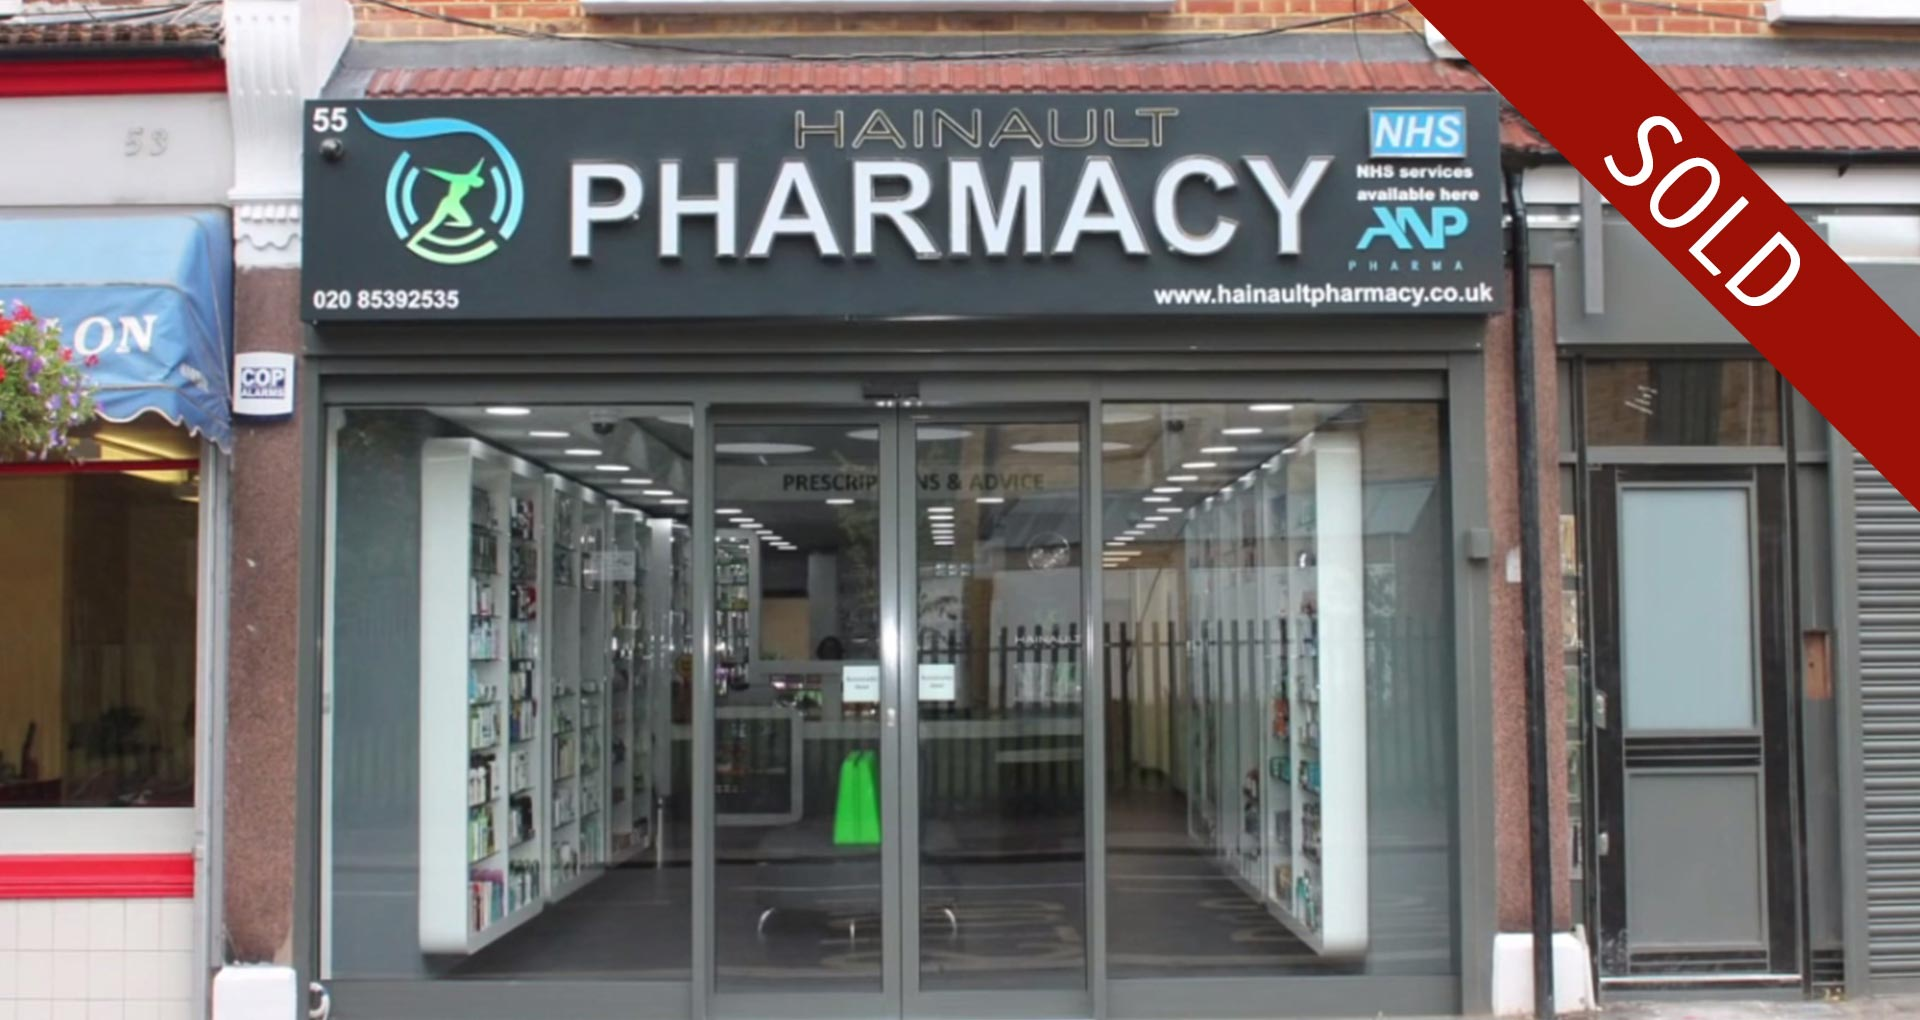 North East London Pharmacy Completion